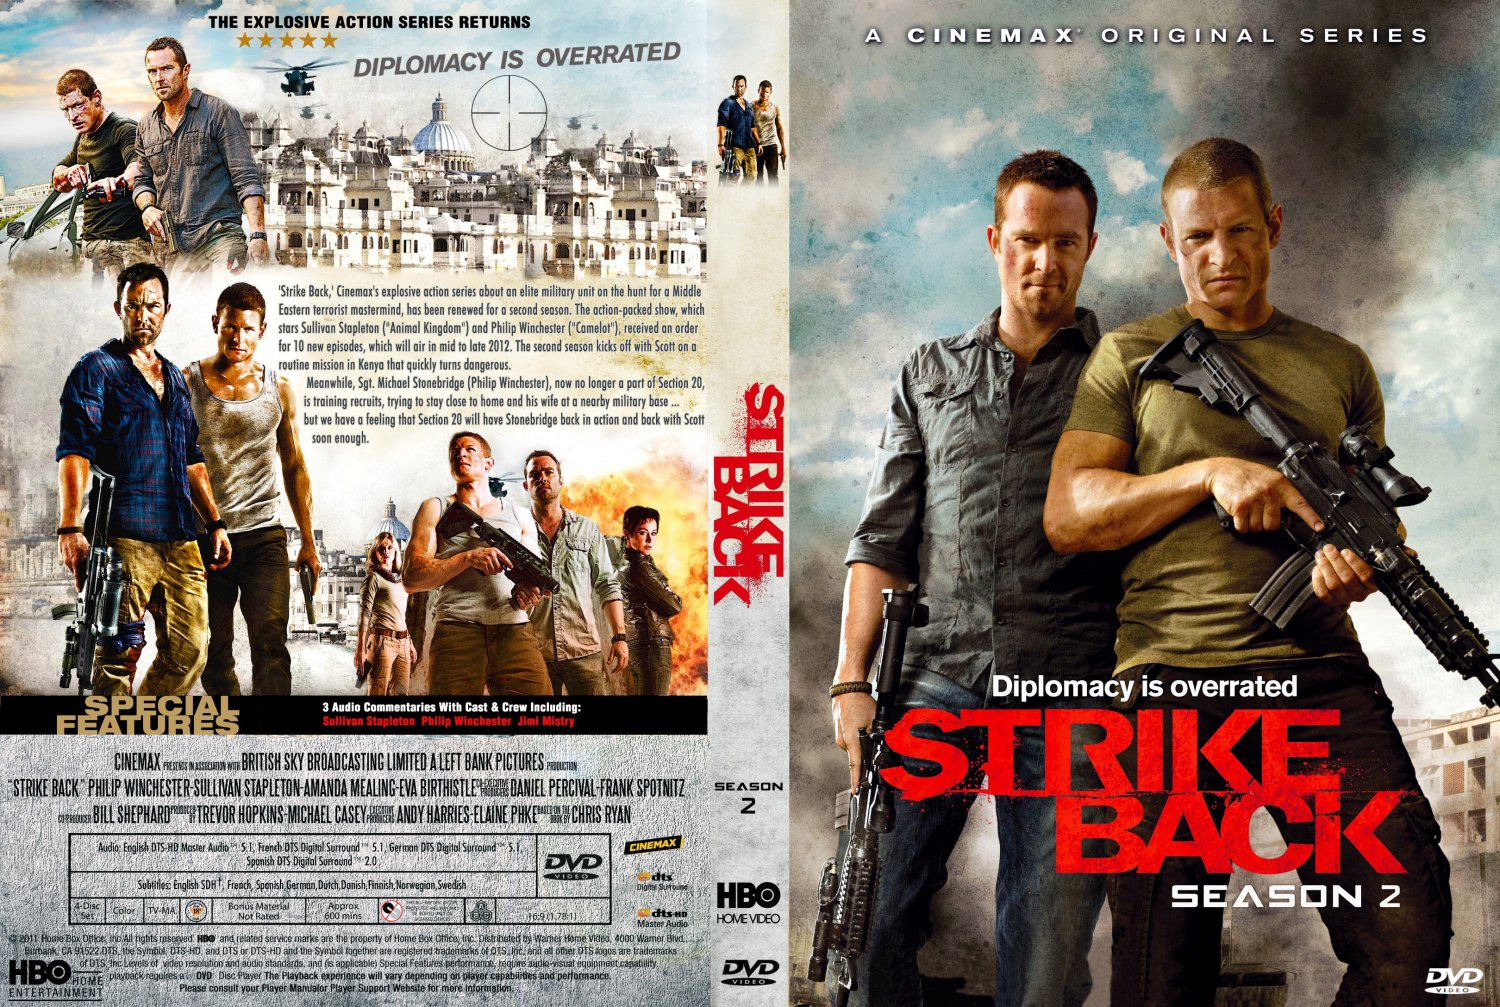 Strike back season 2 sex scenes 1